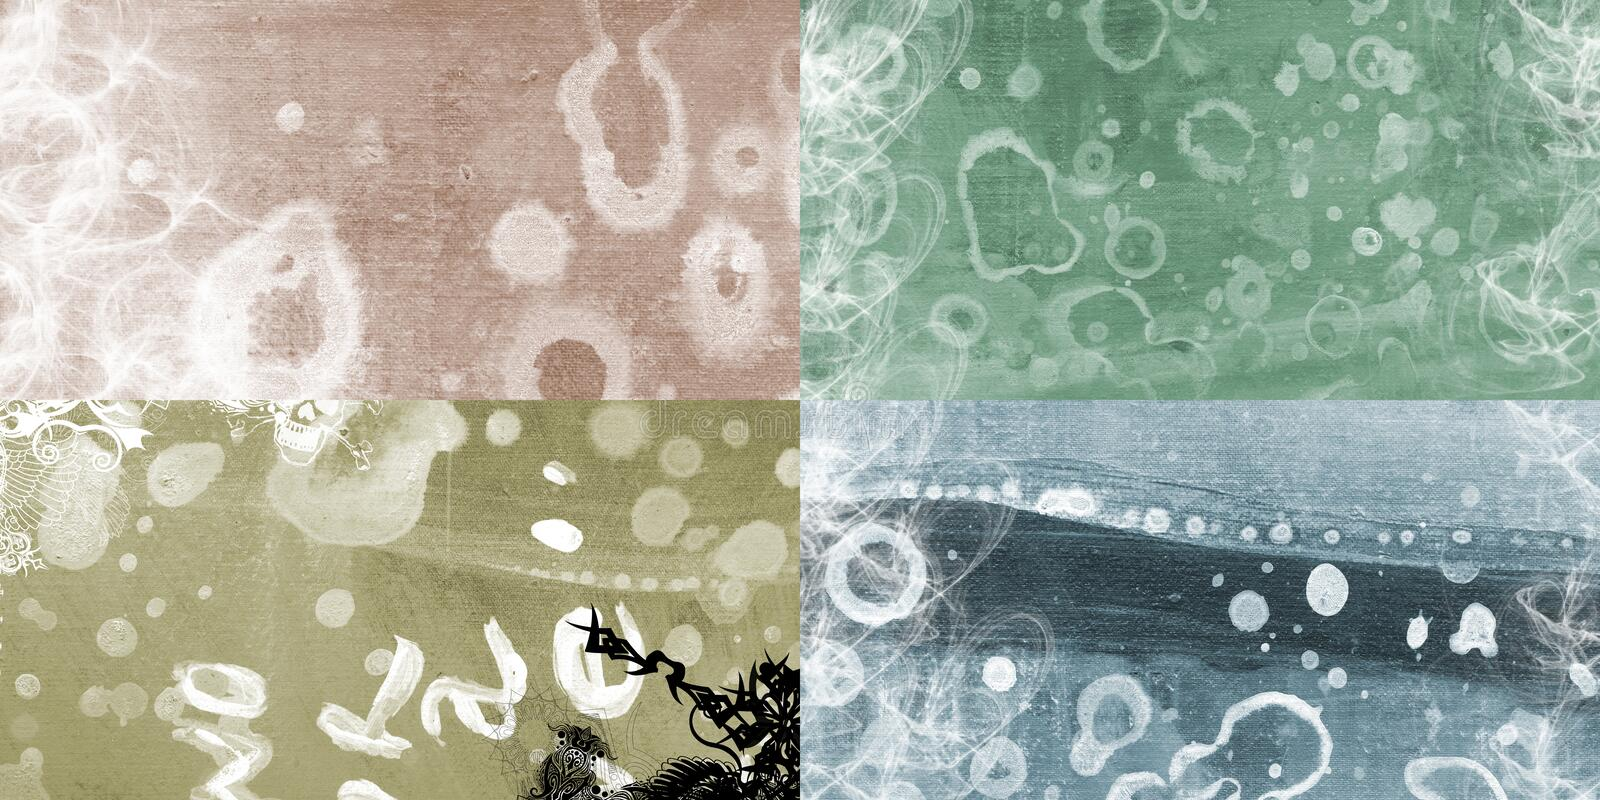 Download Grunged web banners stock image. Image of clip, design - 8326563